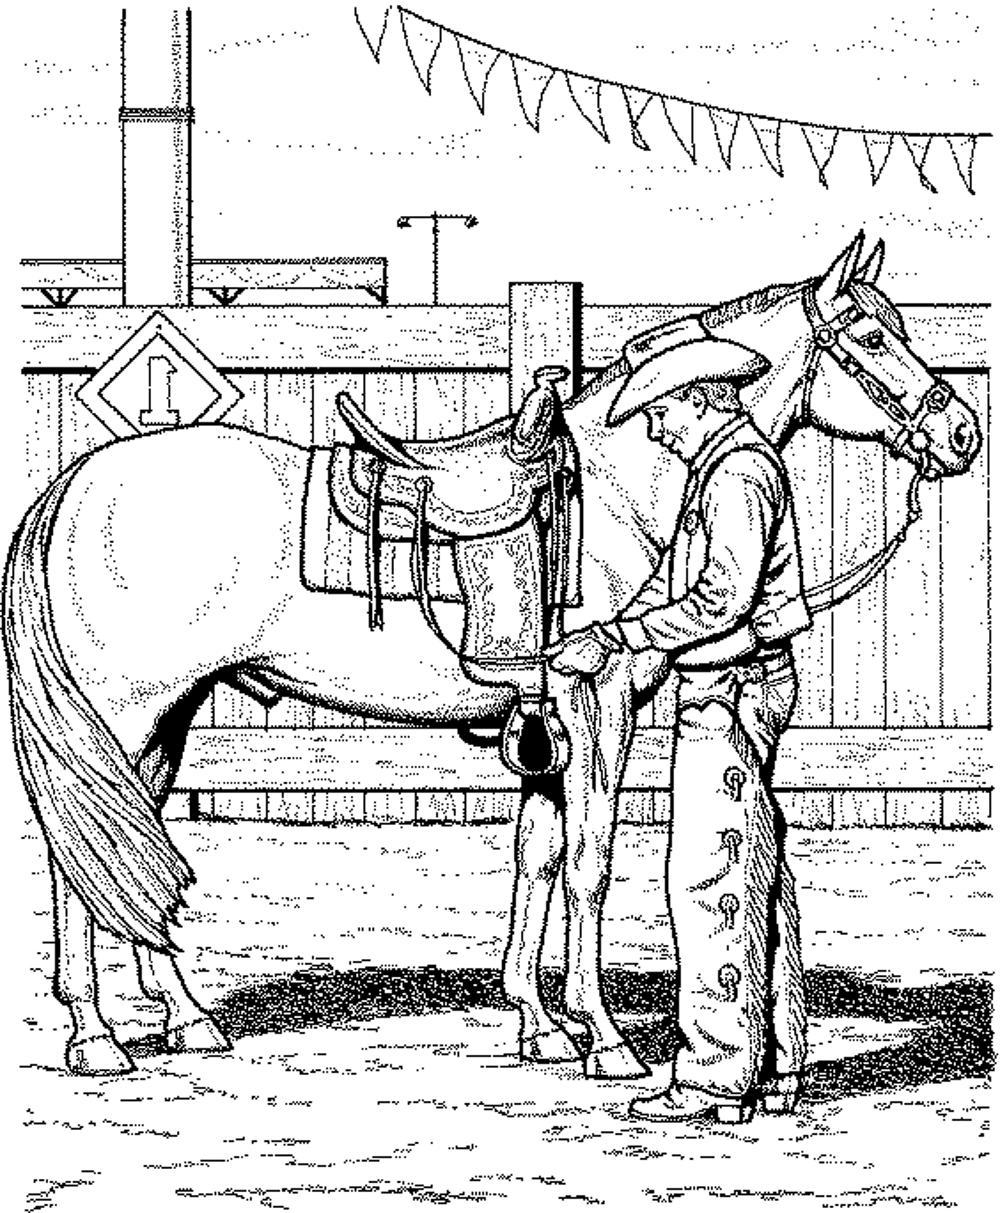 Horses coloring pages for adults intricate horses coloring pages - Free Printable Horse Coloring Pages New Animals Category Image 23